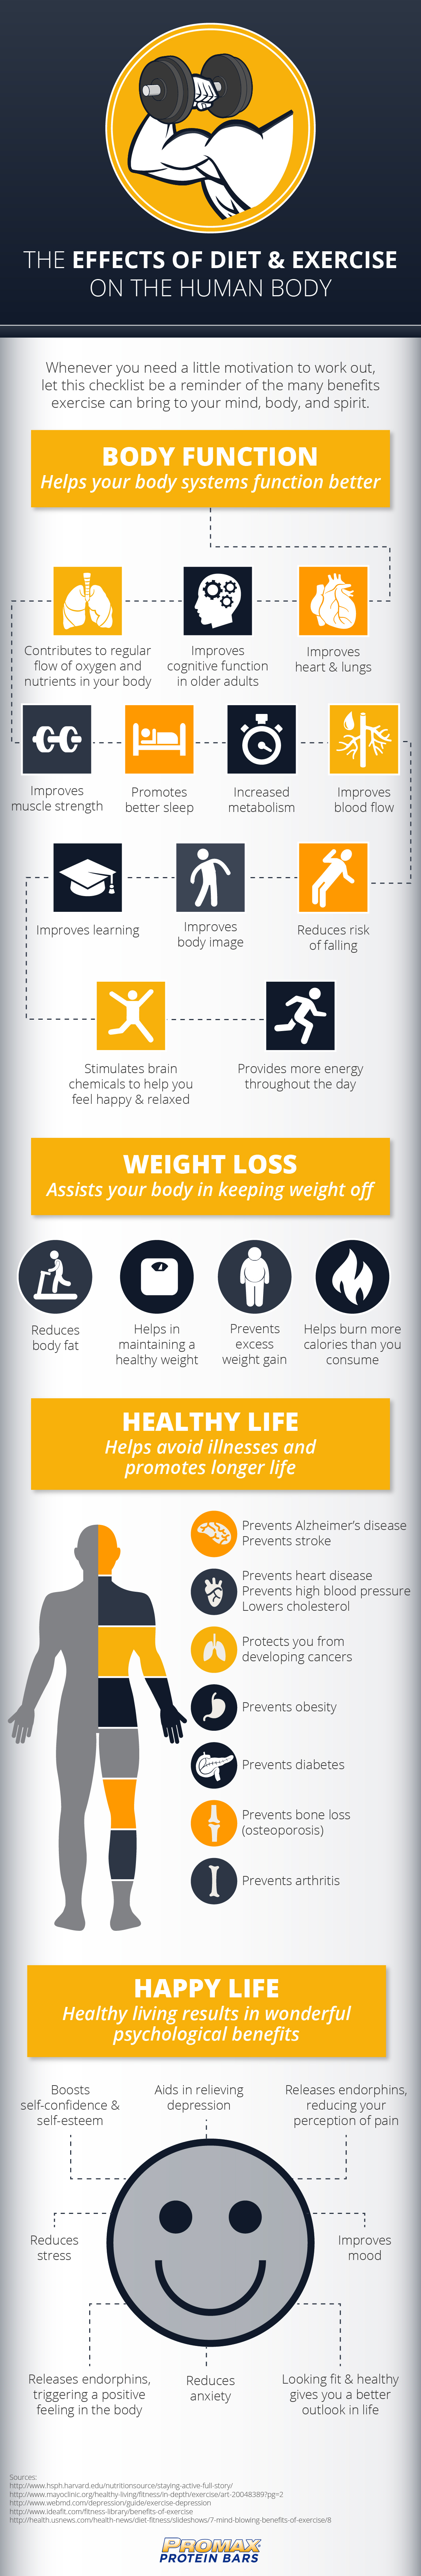 How Diet & Exercise and a Happy & Healthy Life Go Hand-in-Hand - Infographic